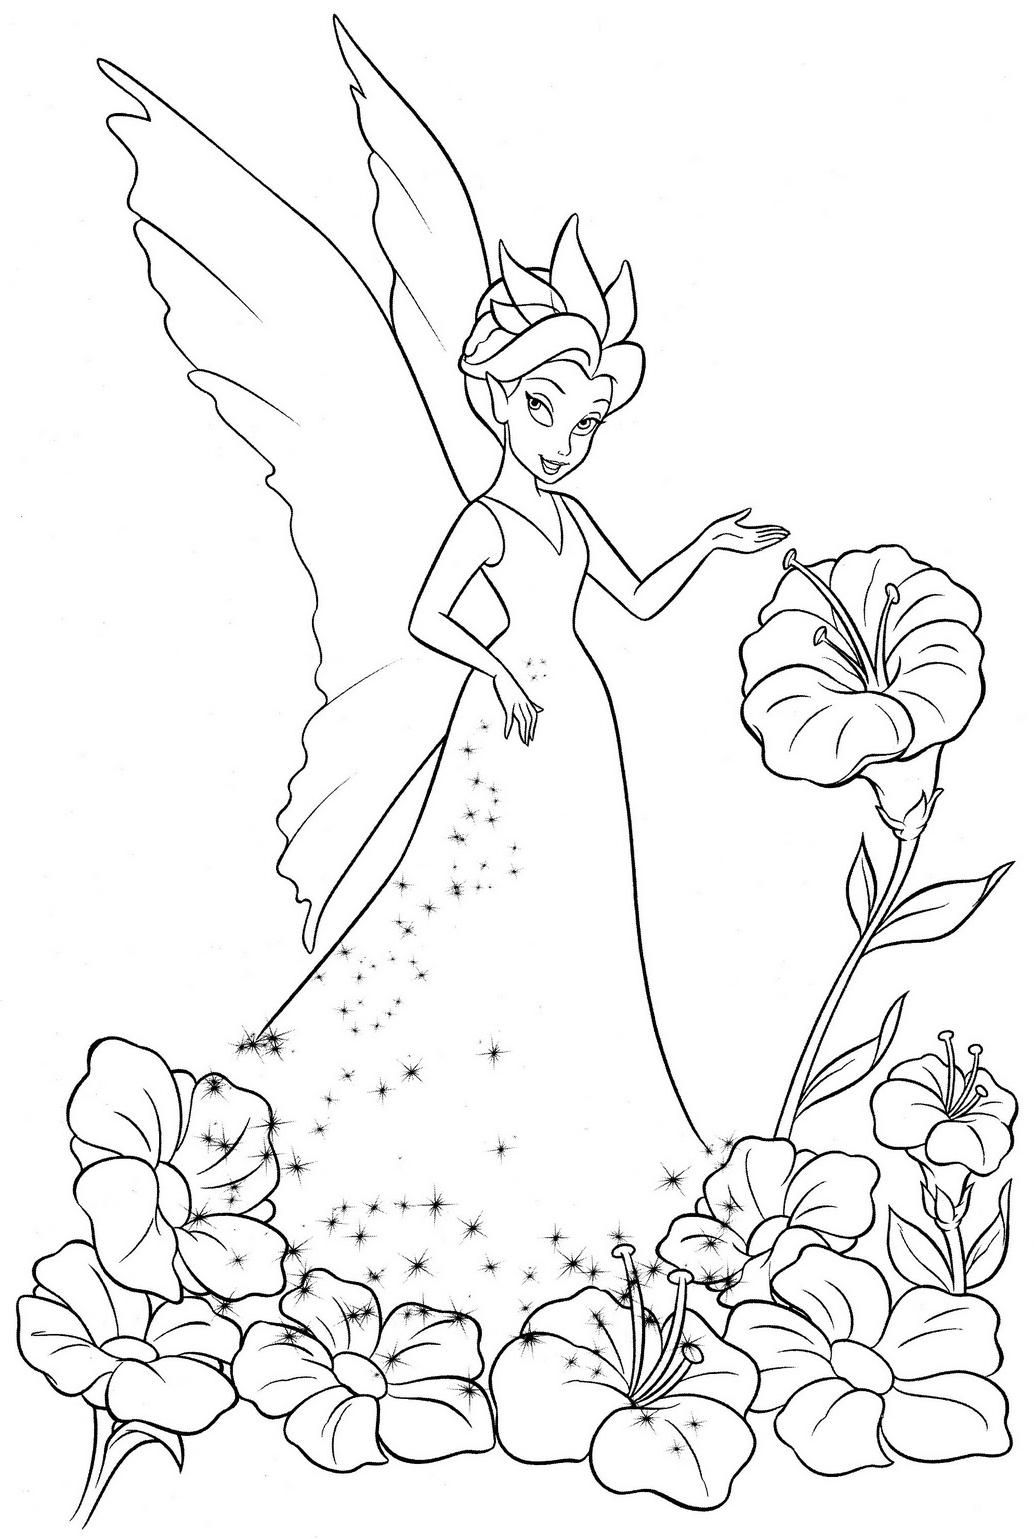 Tinkerbell Feen Ausmalbilder : Coloring Pages Of Tinkerbell And Friends Coloring Pages